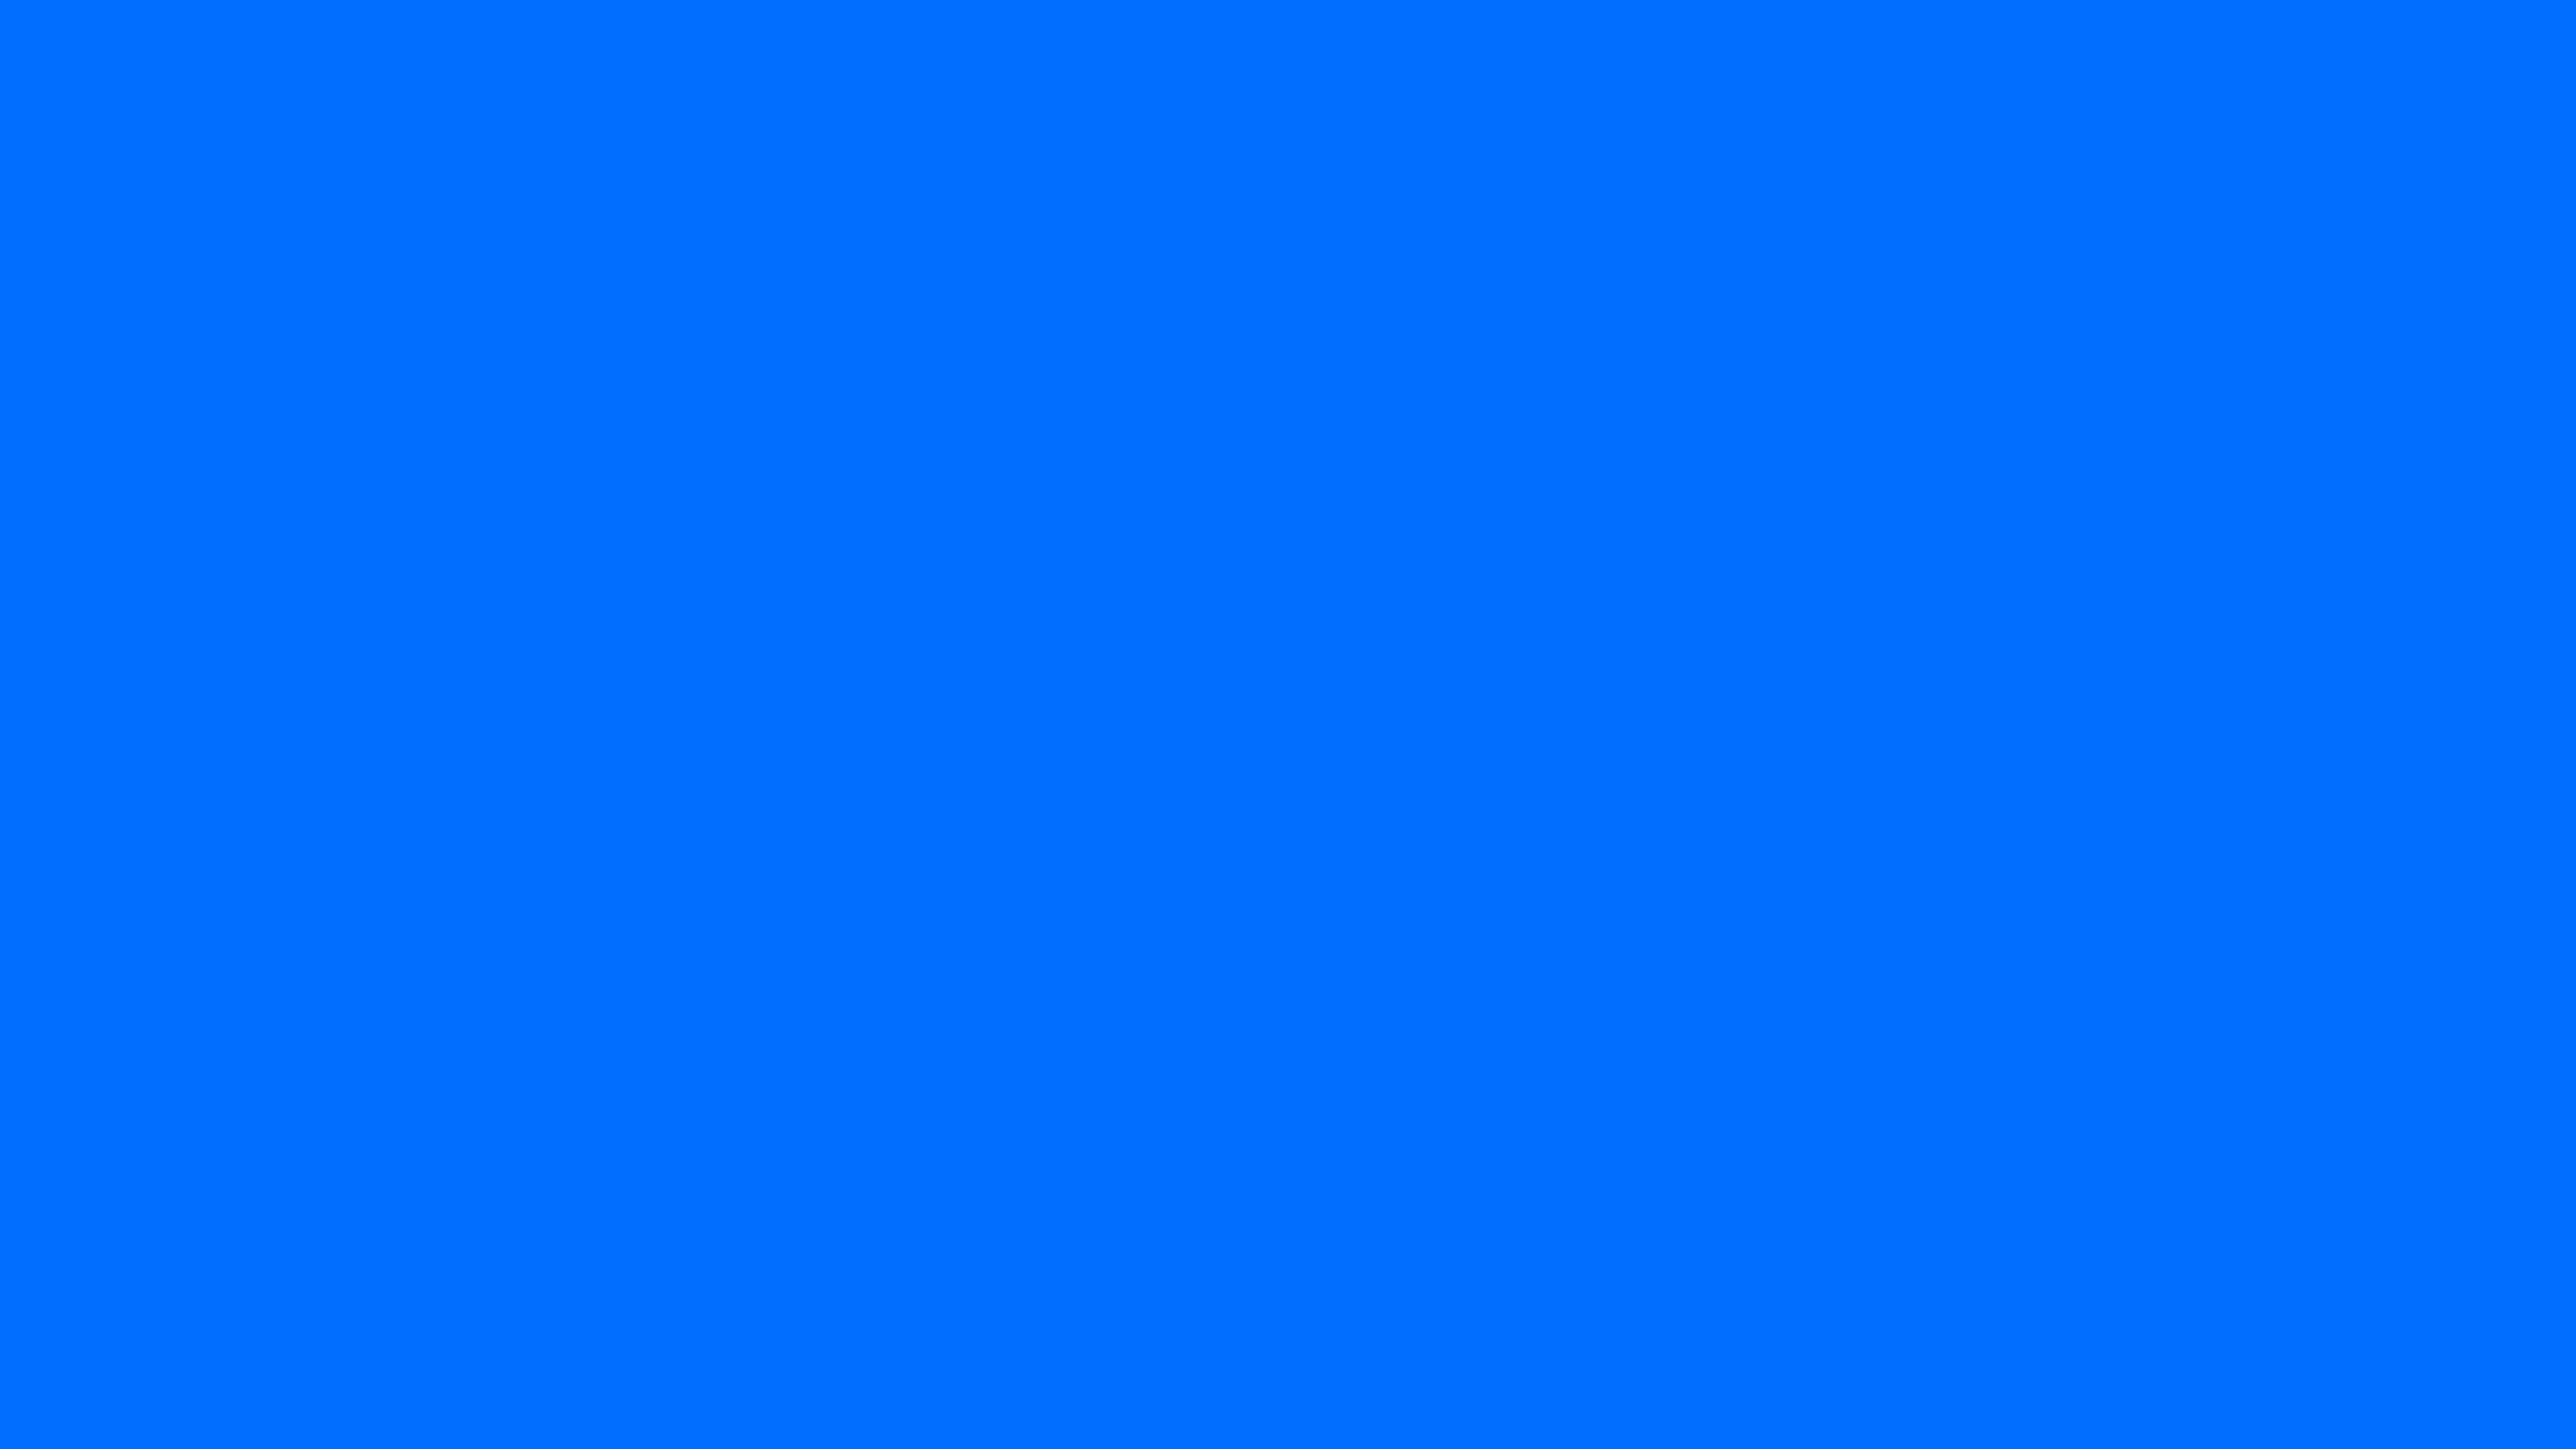 4096x2304 Brandeis Blue Solid Color Background